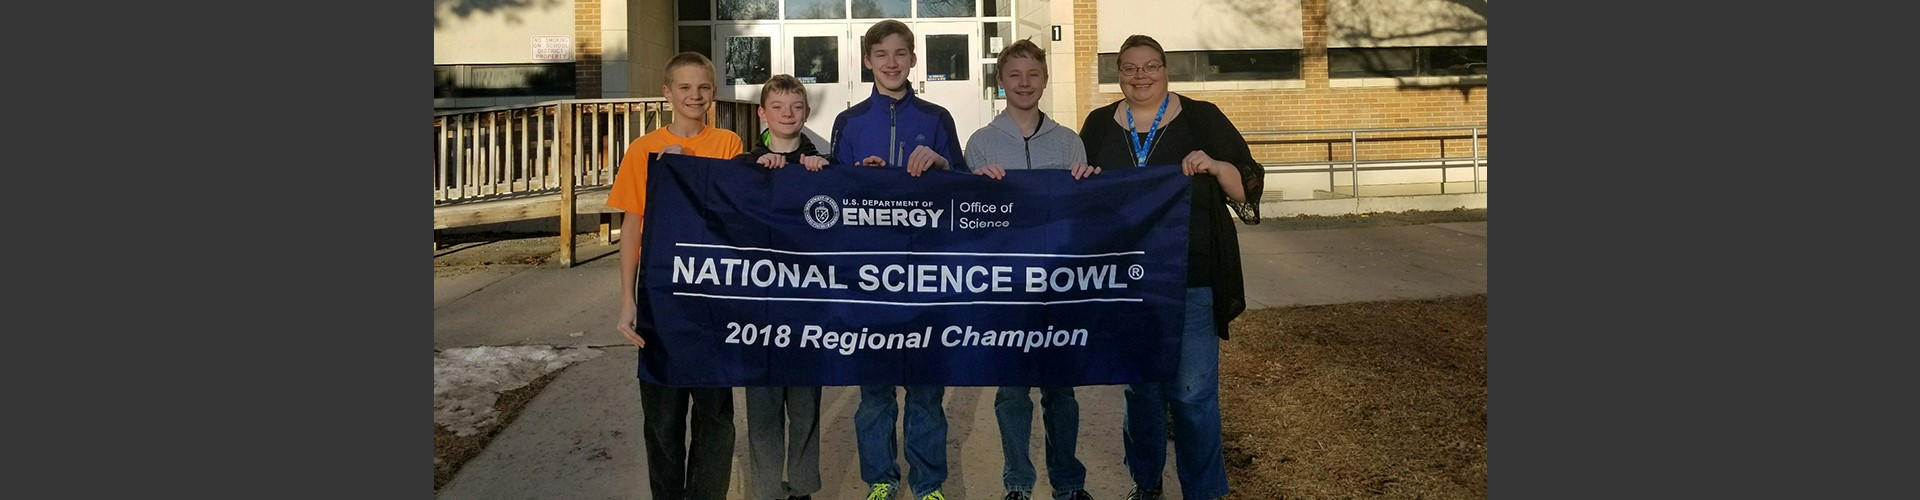 Alameda Middle School students and teacher in front of school with National Science Bowl 2018 Regional Champion flag.